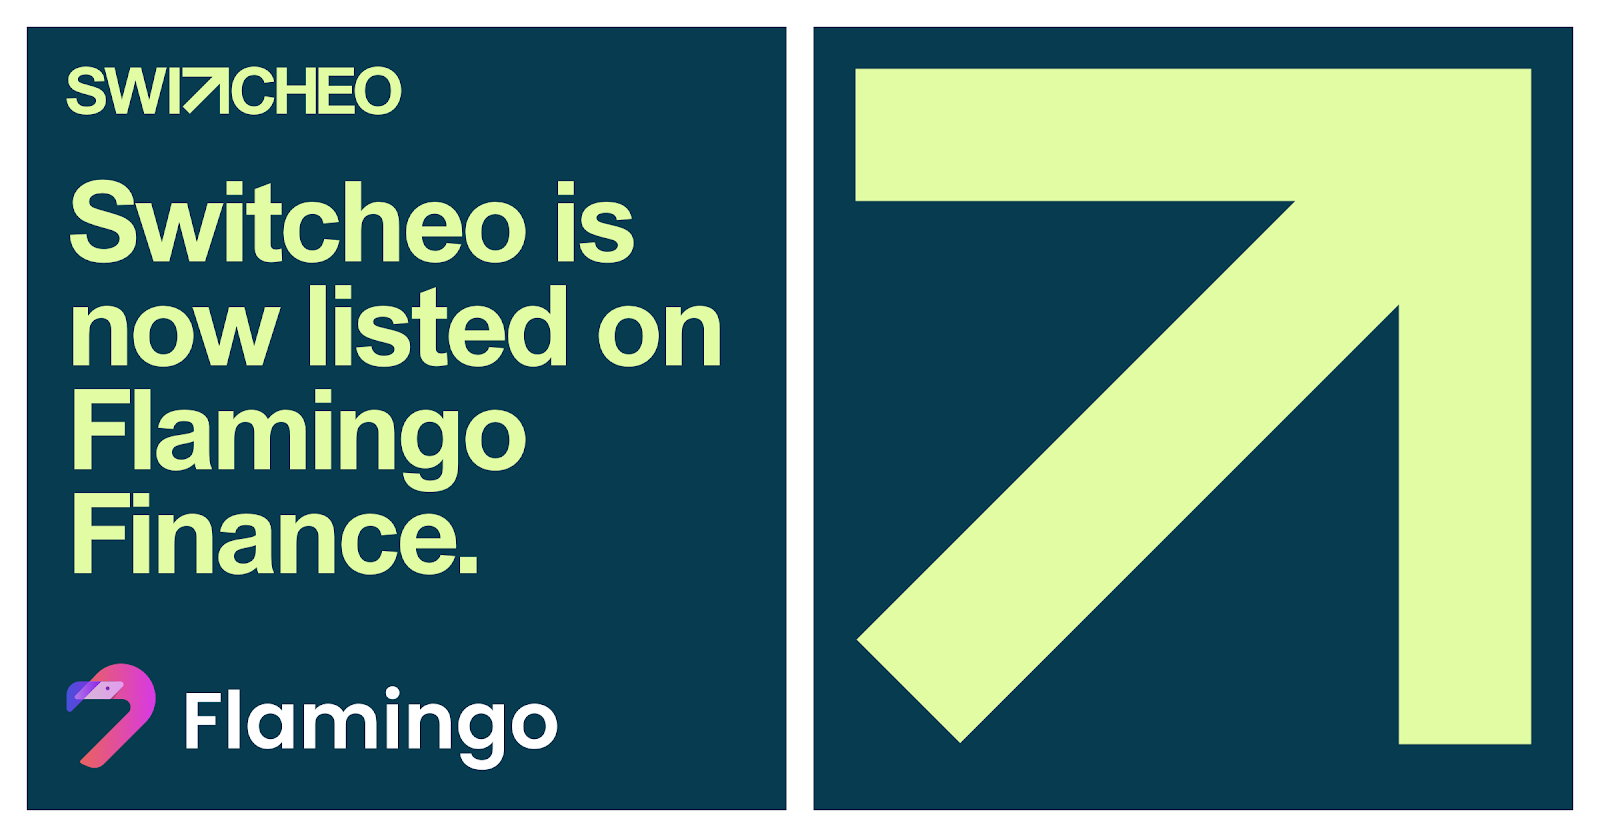 Switcheo is Now Listed on Flamingo Finance